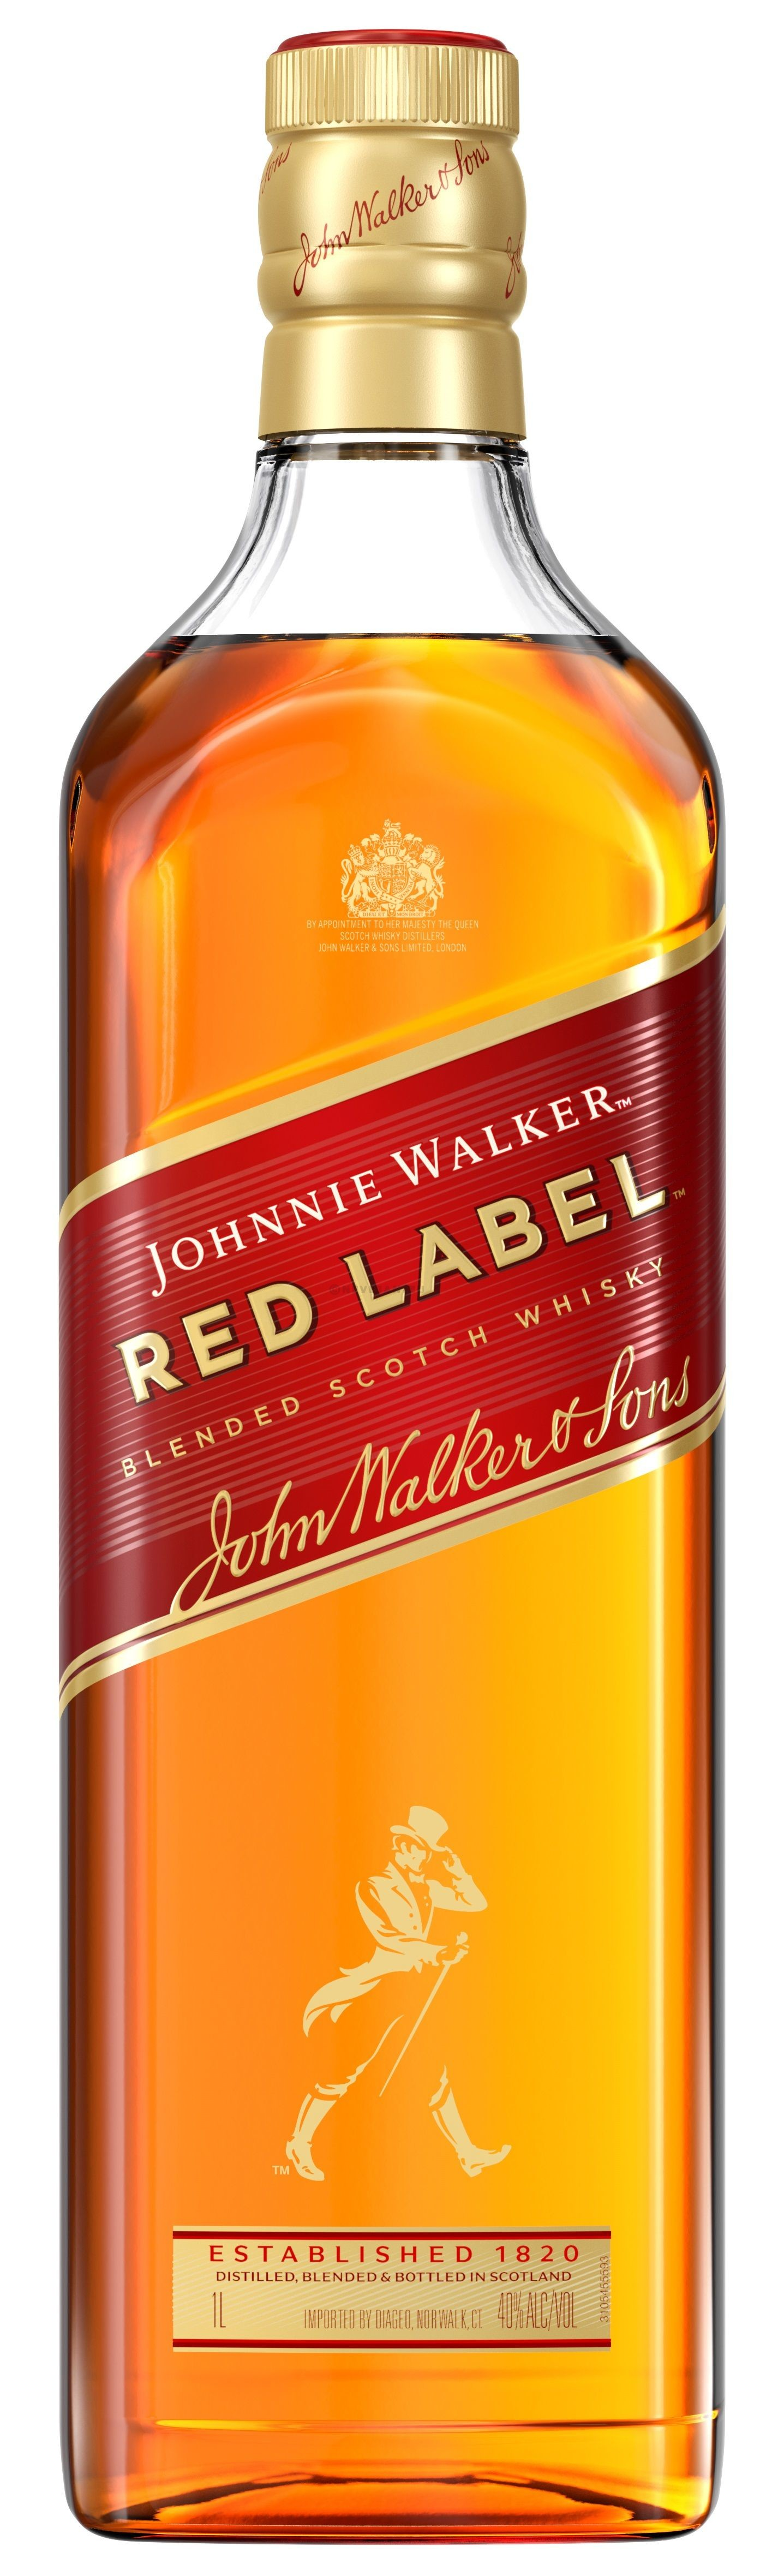 Johnnie walker red label 1l 40% scotch whisky